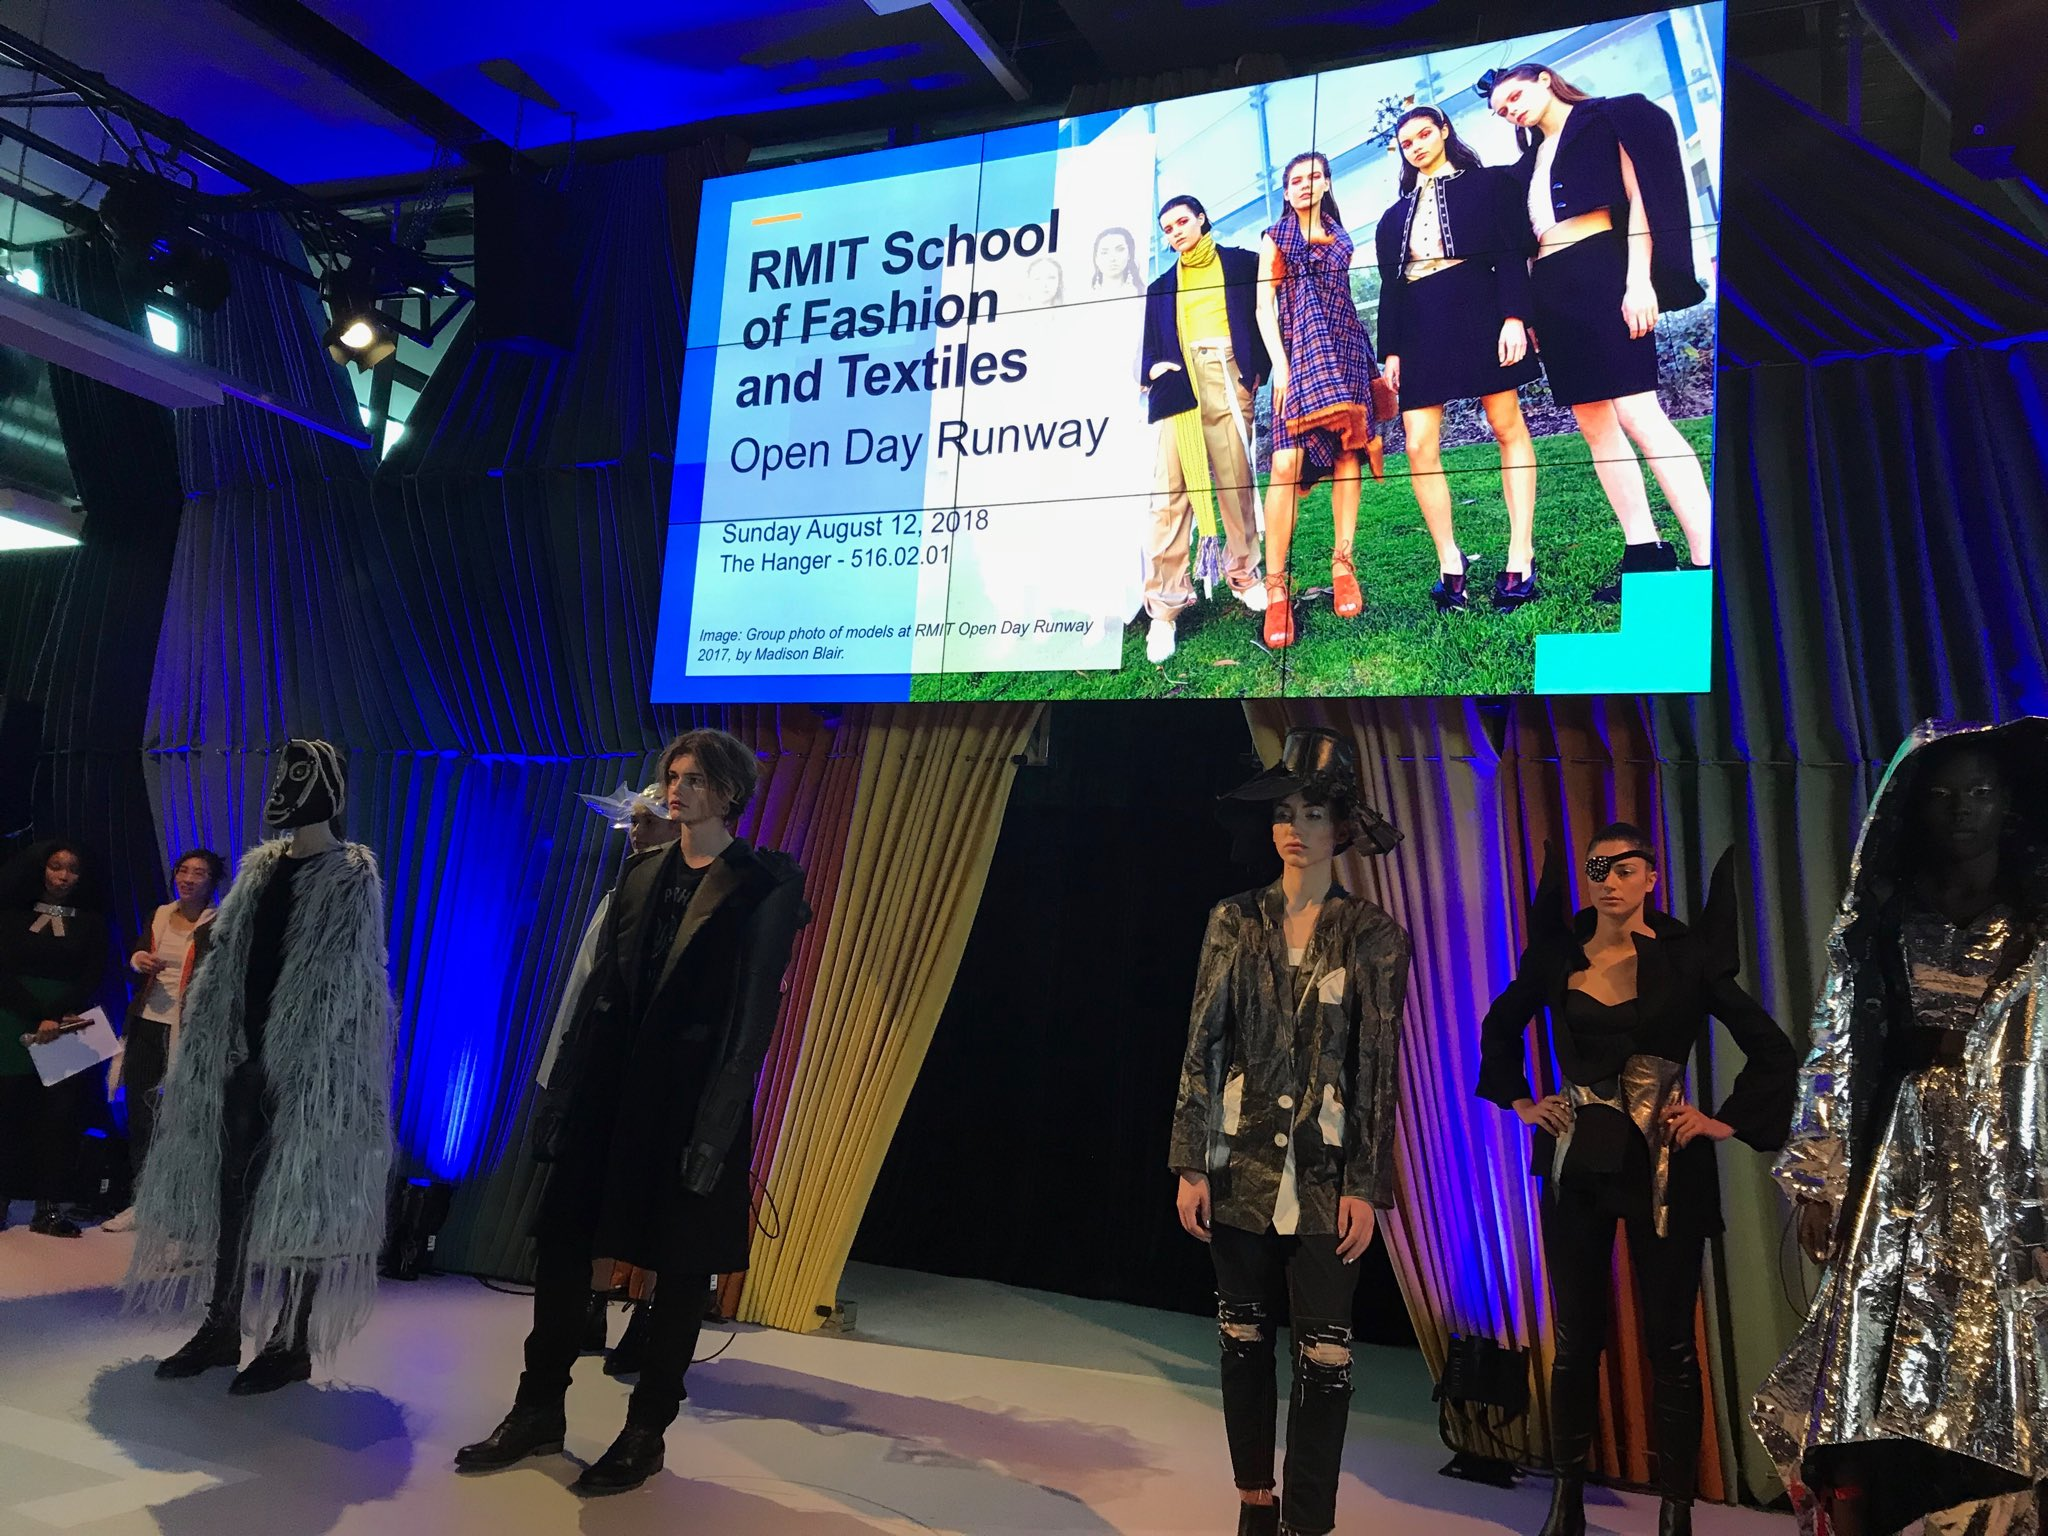 Ashlee Faletic On Twitter One Of The Best Parts Of Rmit Open Day Our Fashion Students Are Amazing Rmitopenday